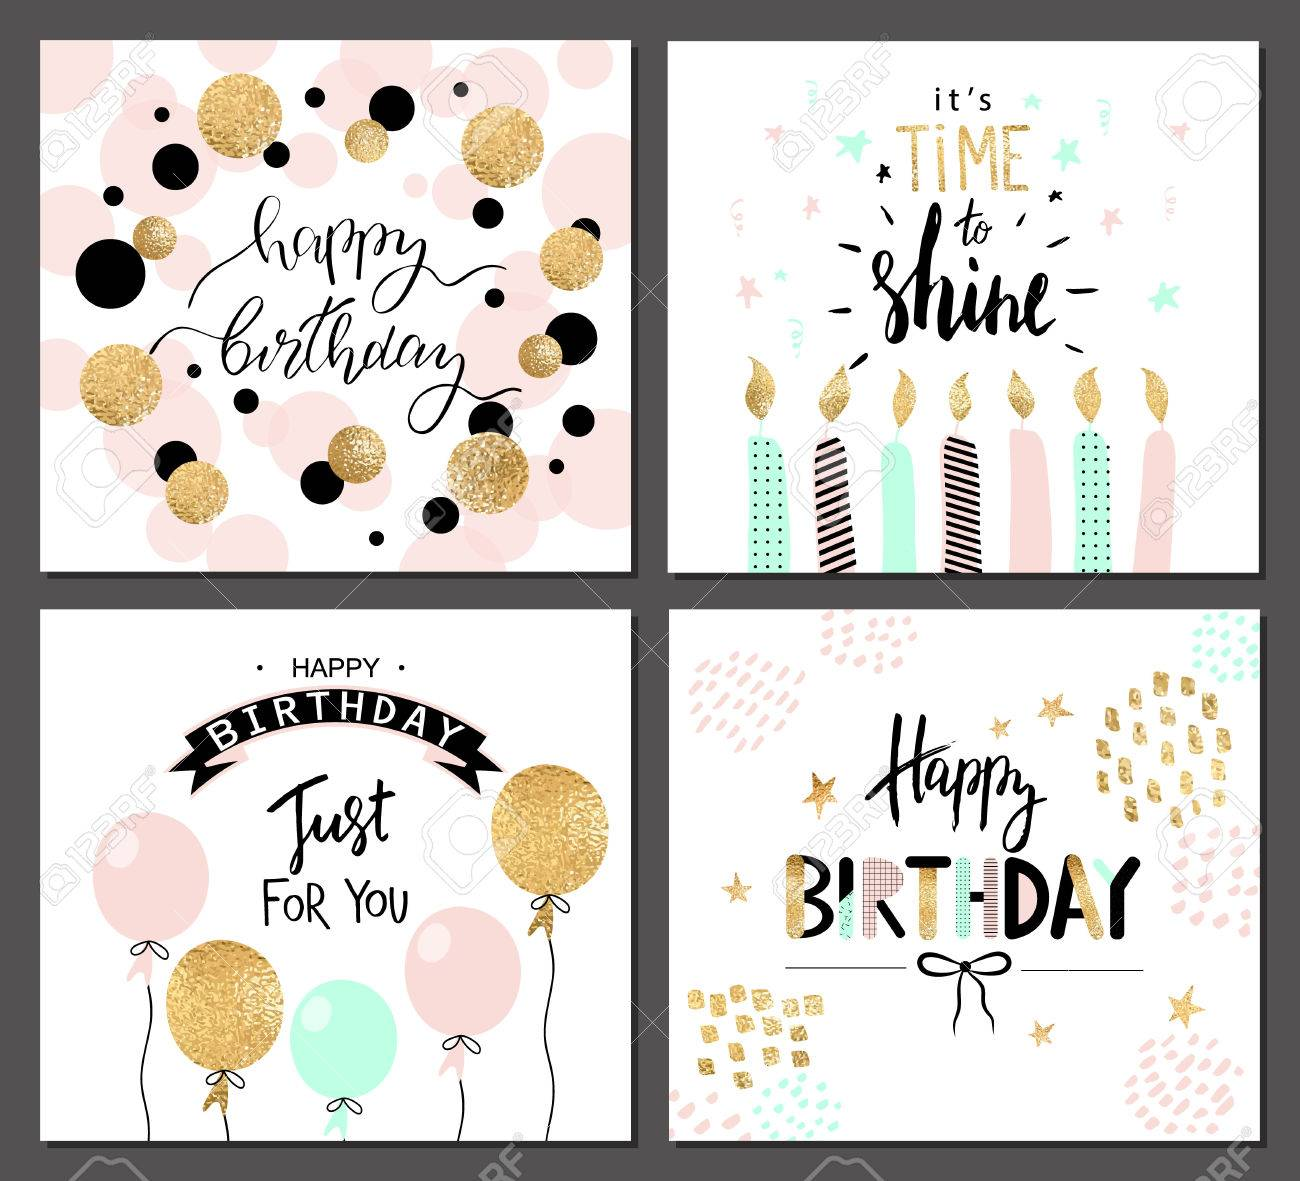 Happy birthday greeting cards and party invitation templates happy birthday greeting cards and party invitation templates with lettering text vector illustration hand stopboris